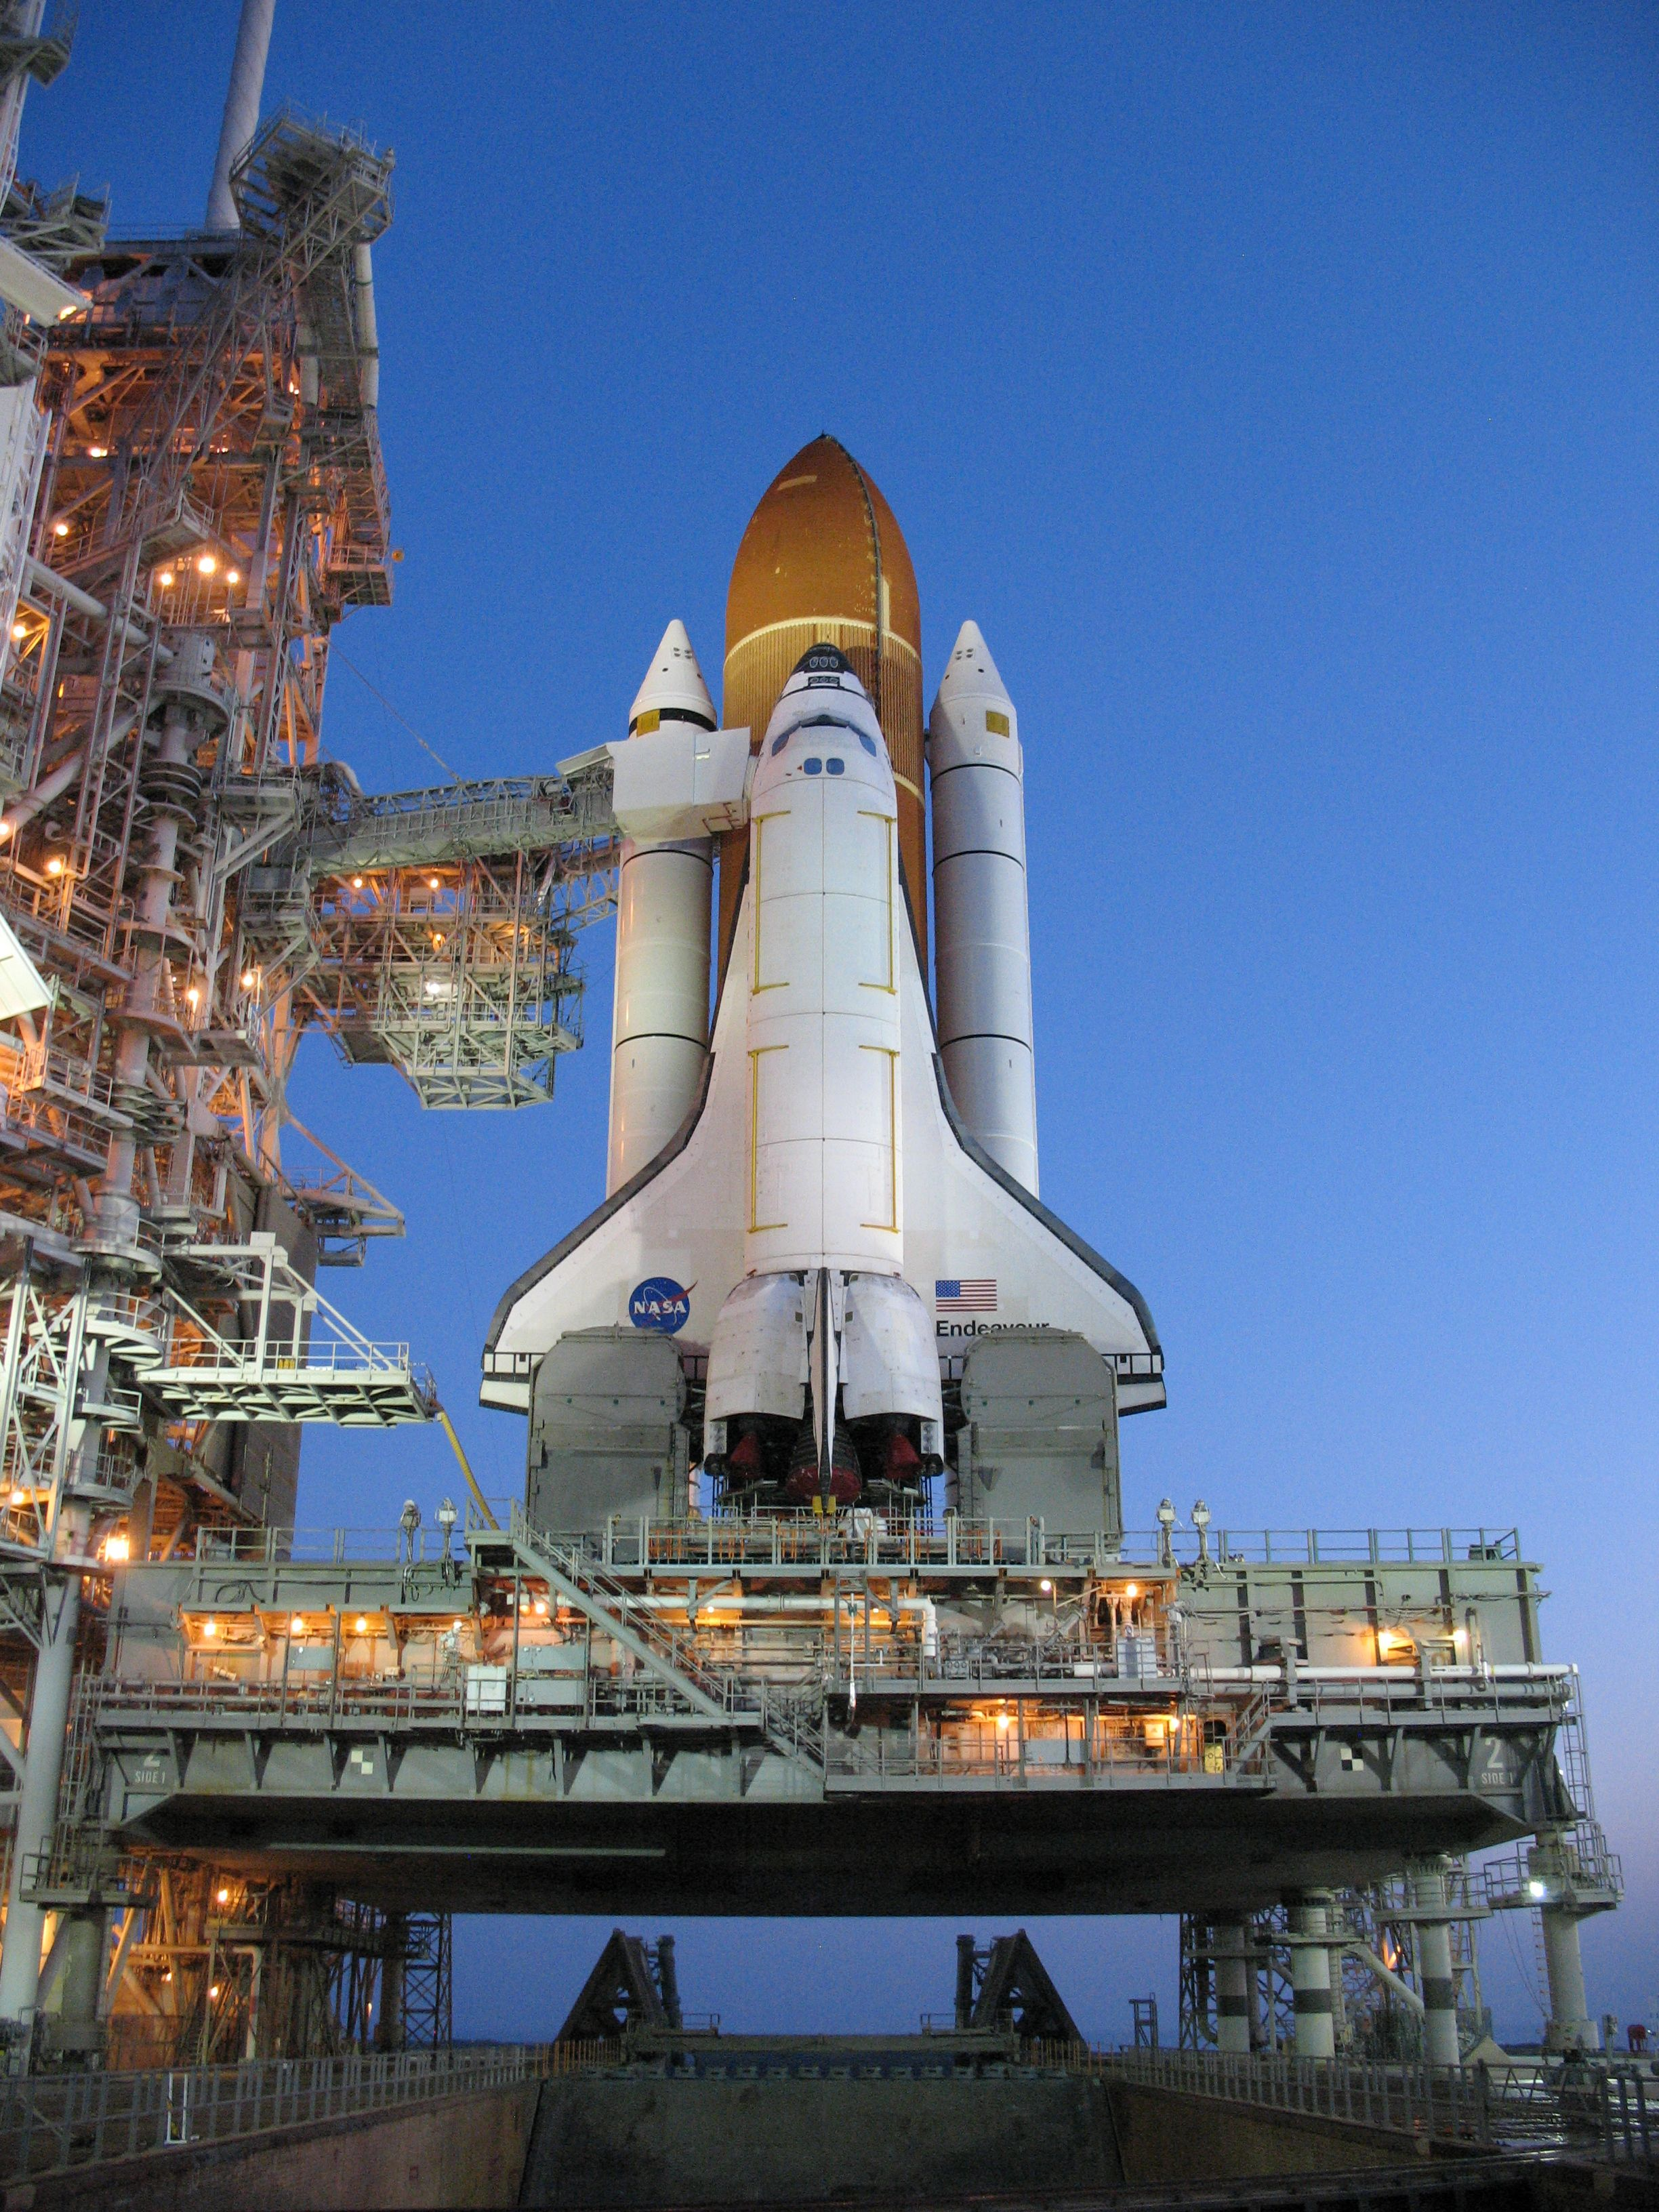 Amazing!! Adventure I will never Space shuttle